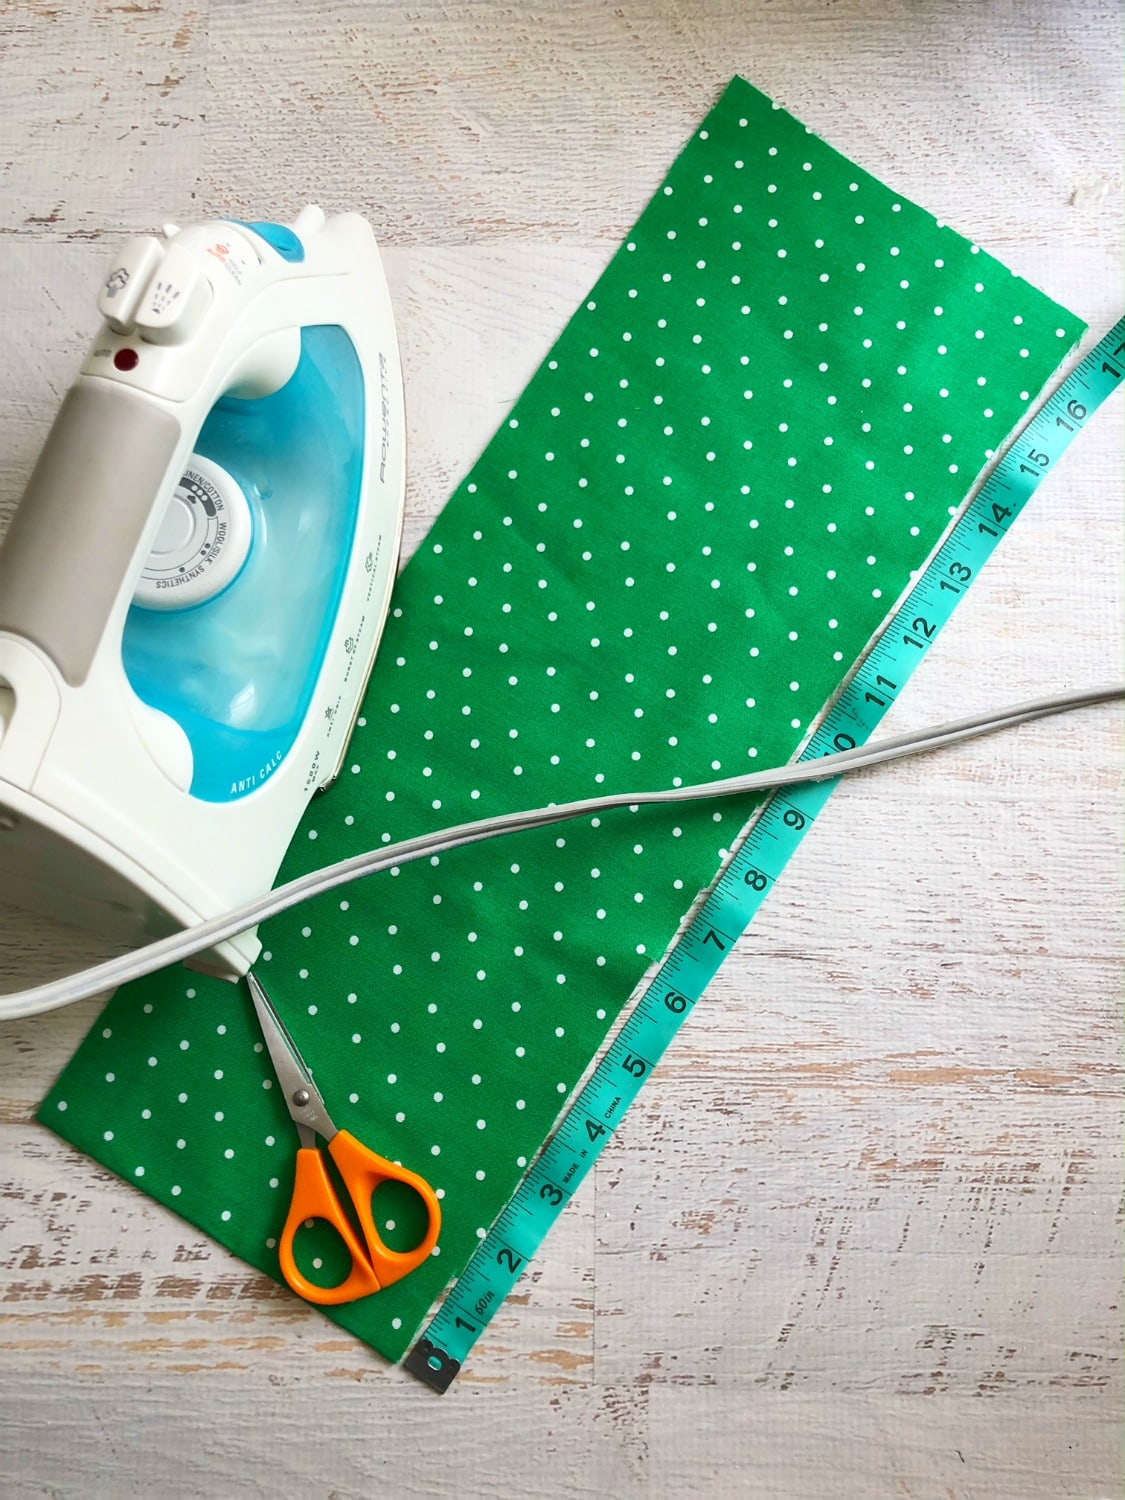 Green Fabric being ironed to hang the shamrock wreath with.